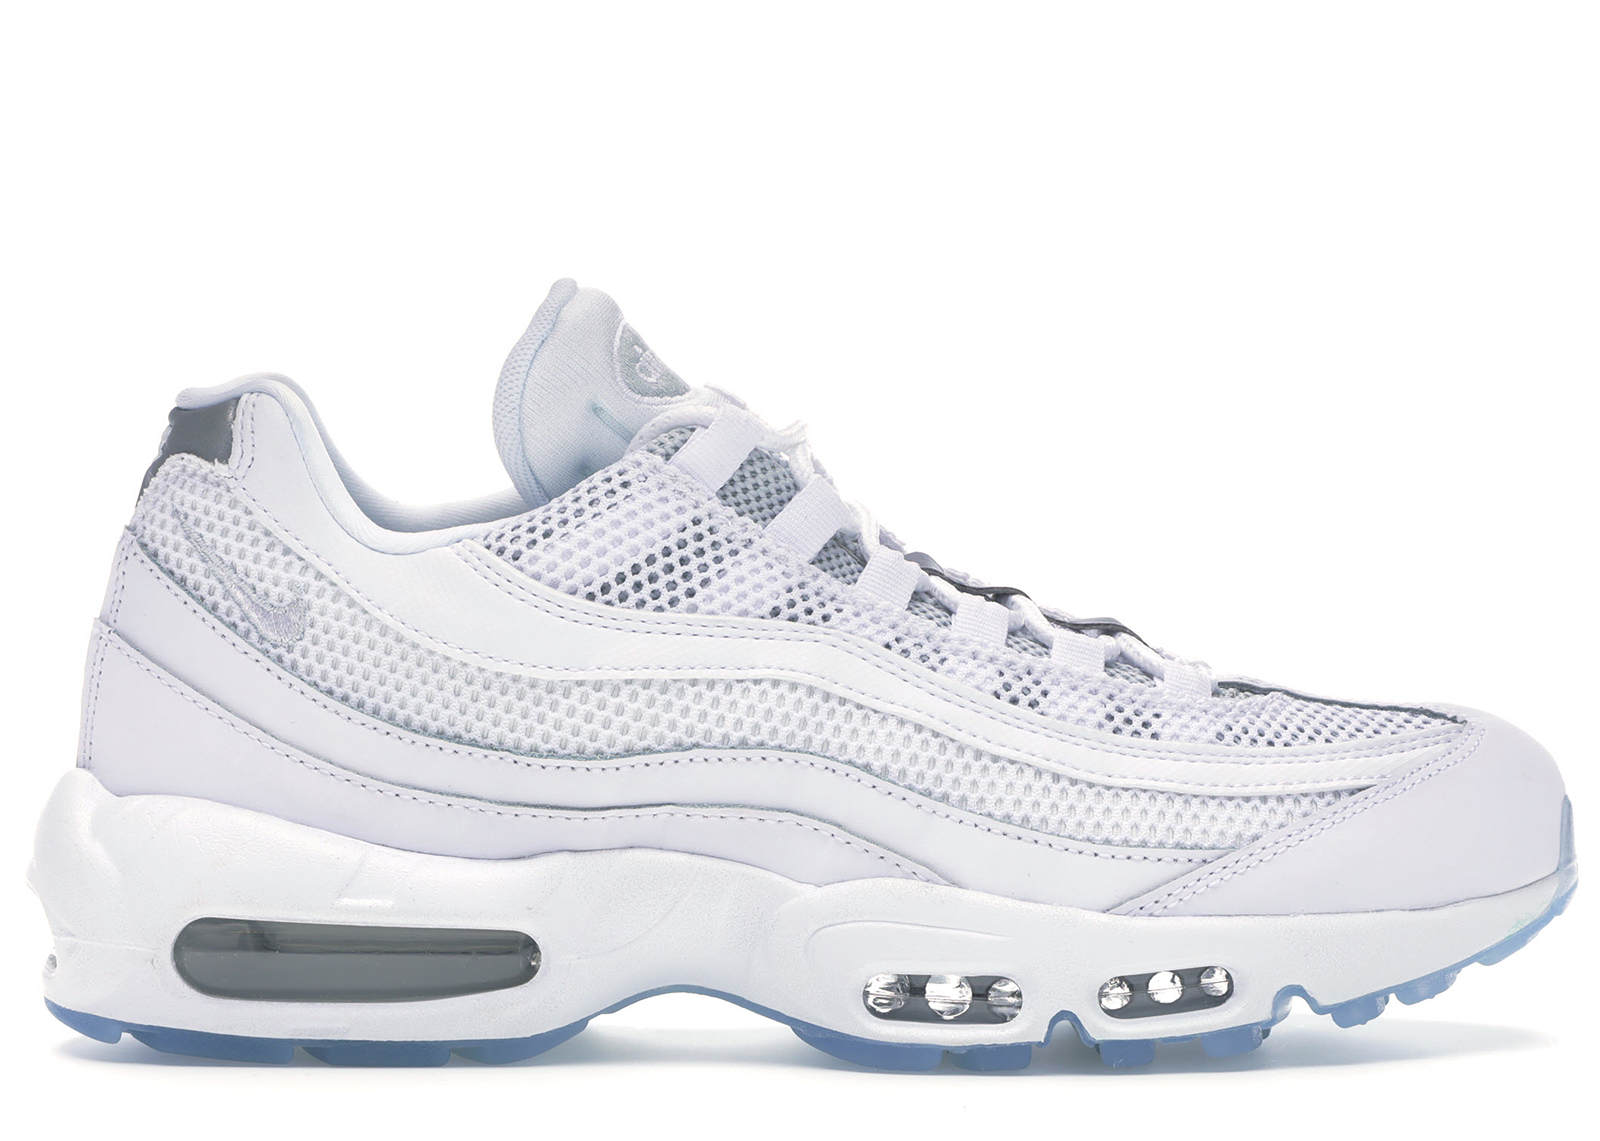 Nike Air Max 95 Shoes Release Date Kostenloser Versand Nike